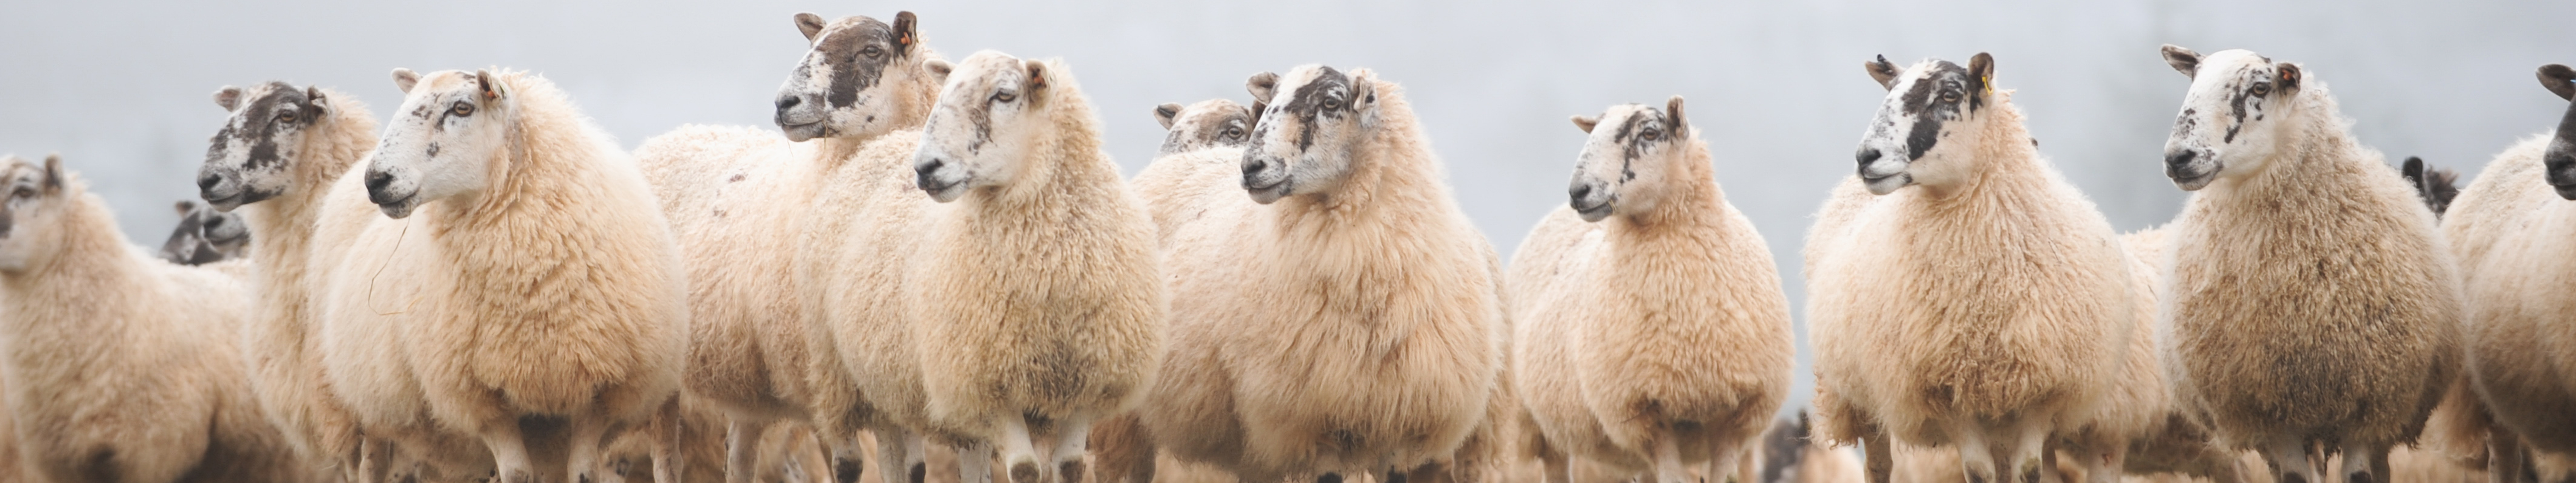 A row of sheep looking on in their farm insured by Acres Insurance Brokers iin Northamptonshire